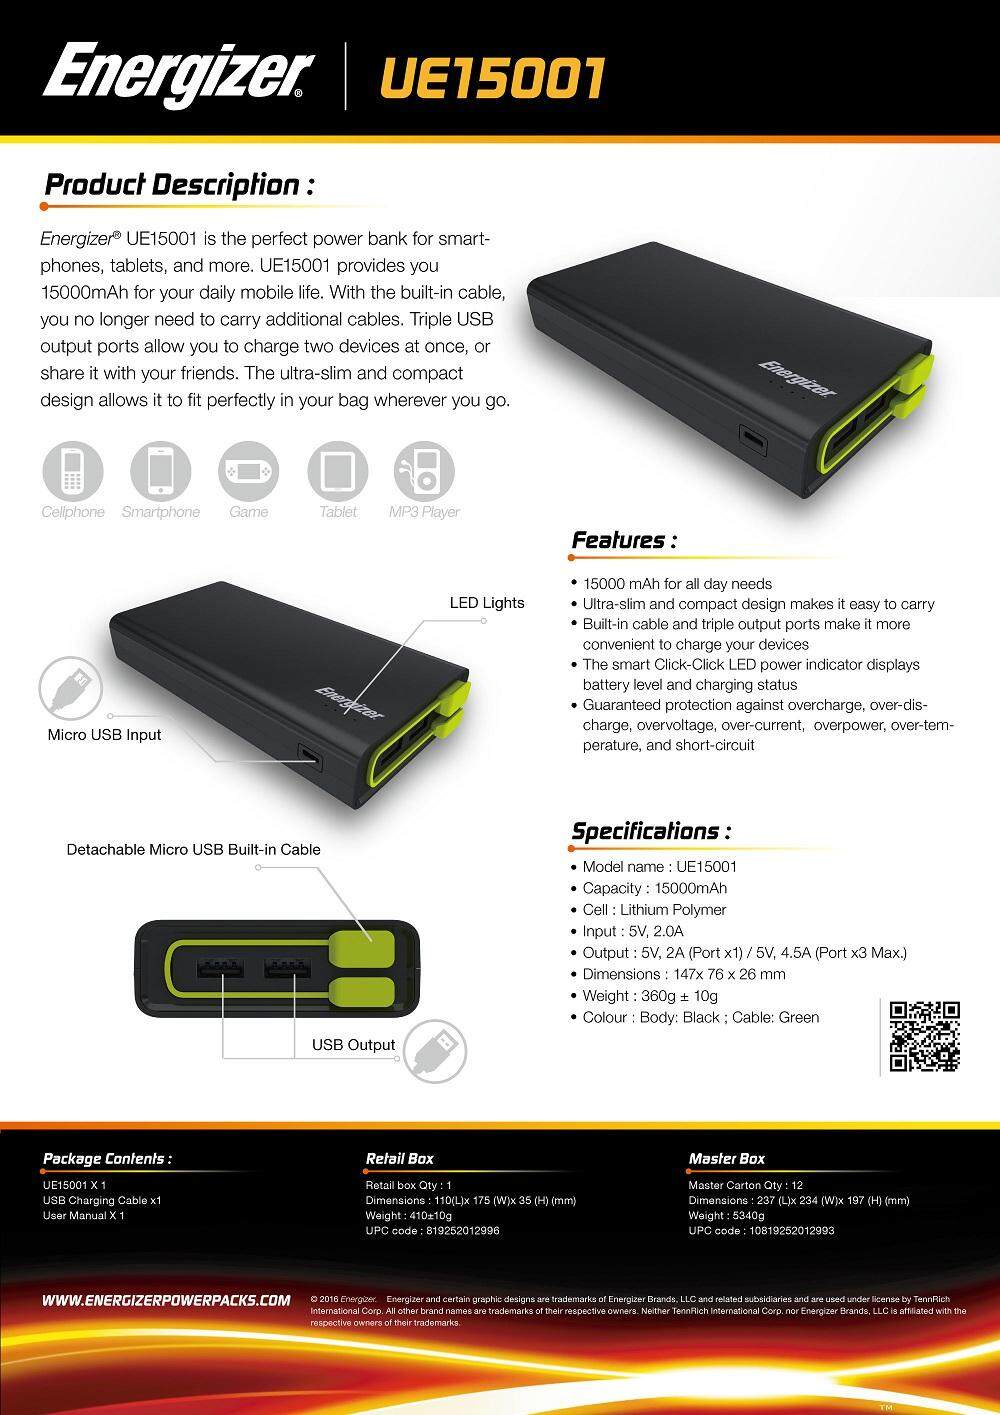 Energizer Ue15001 15000mah Power Bank With Build In